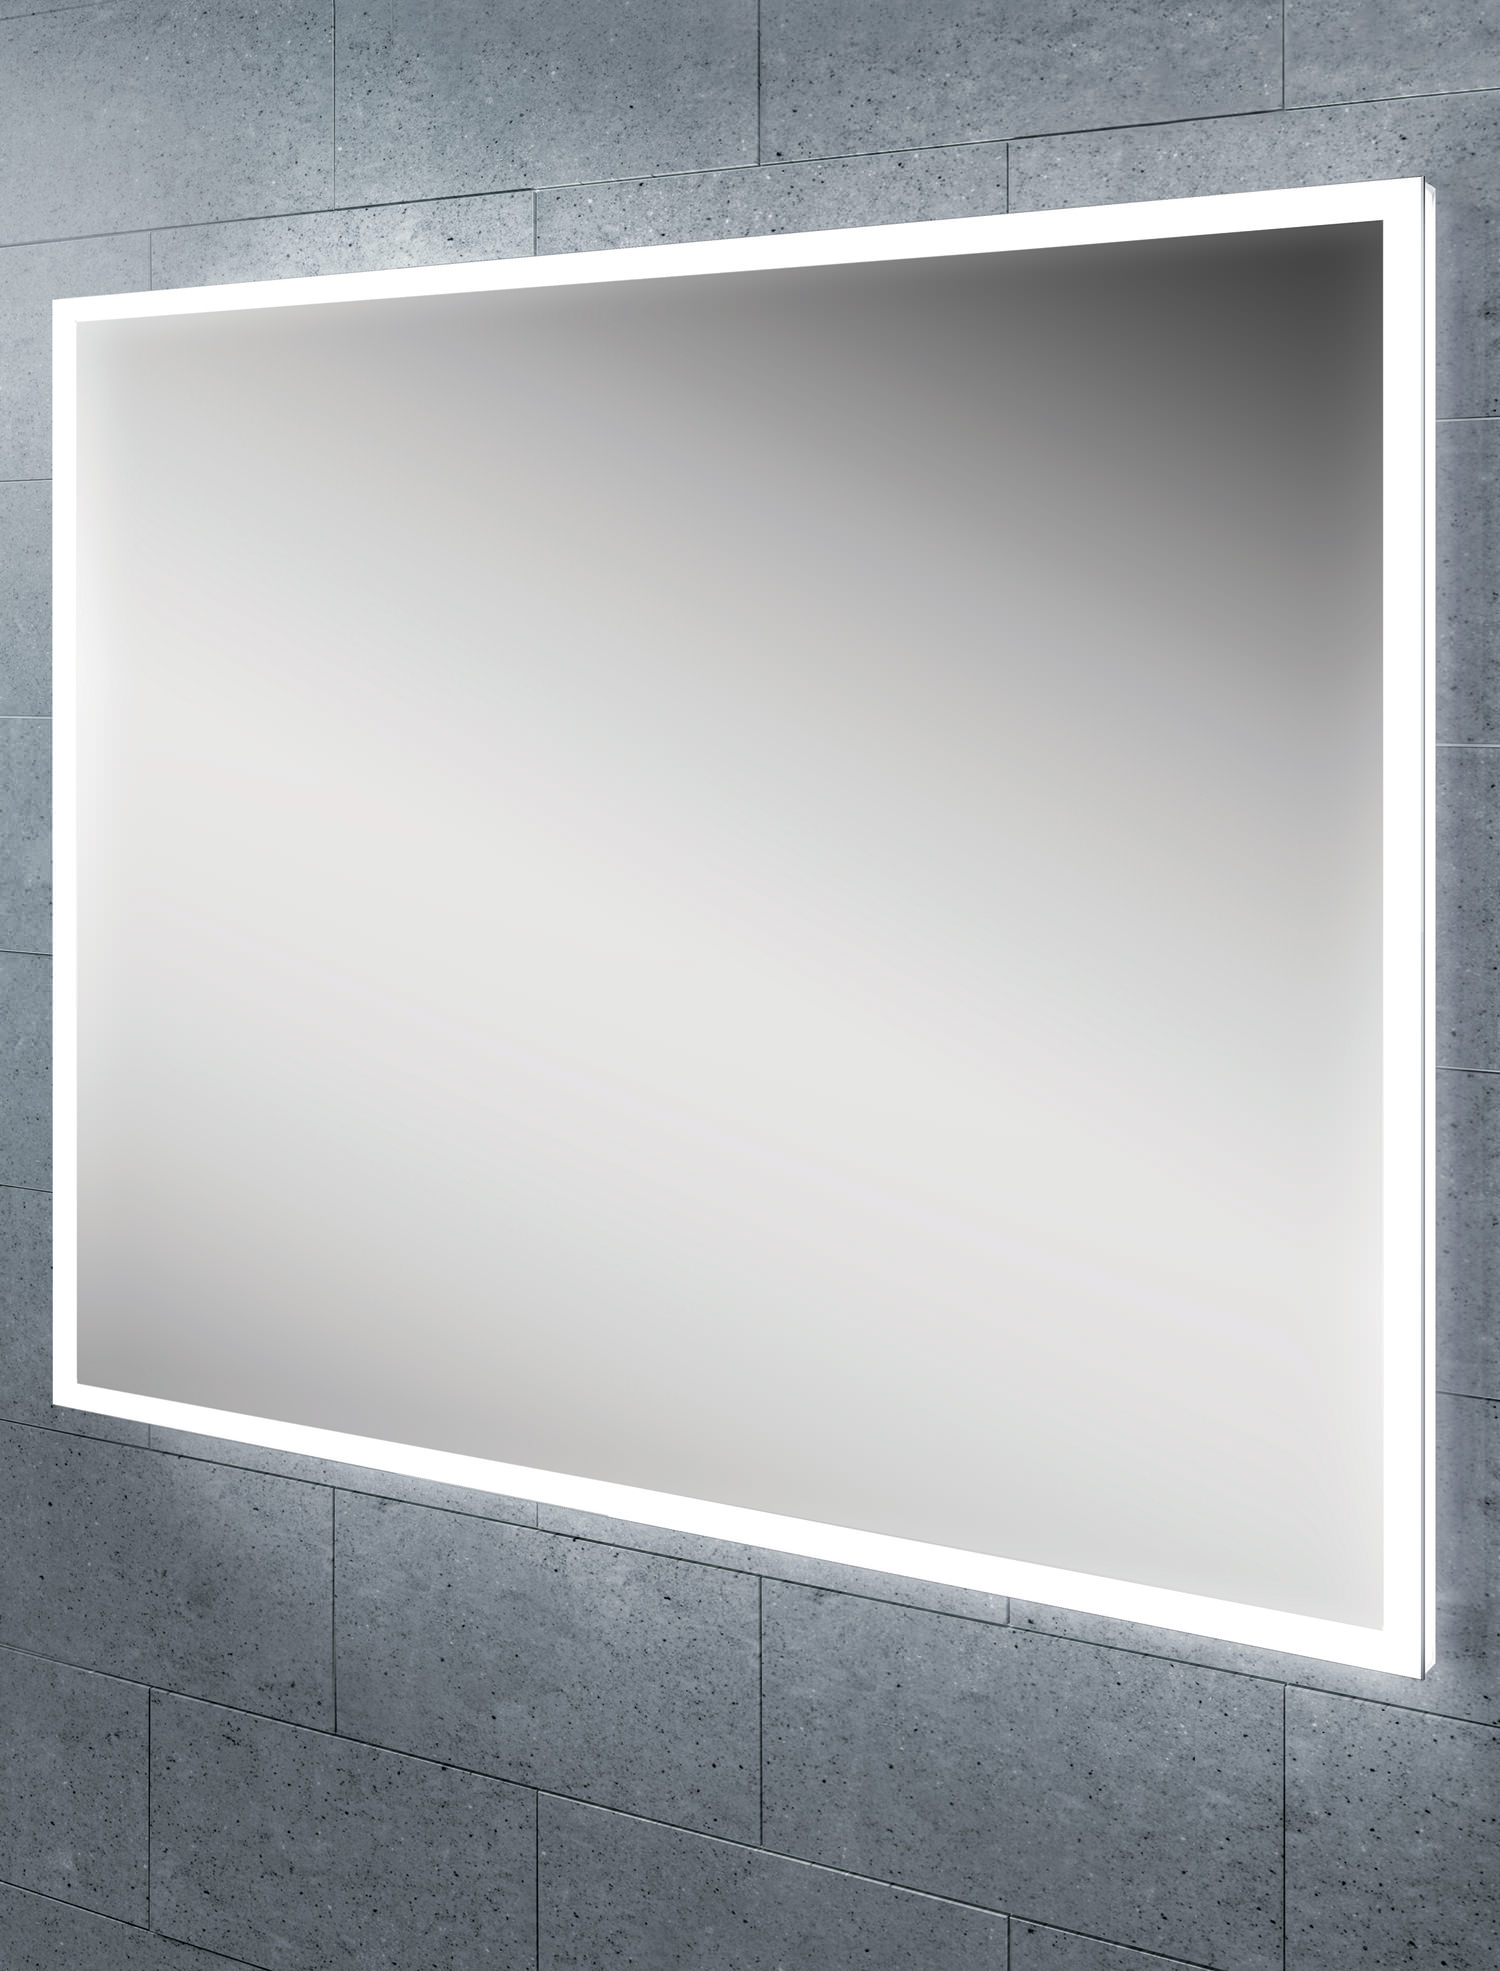 hib globe 60 steam free led illuminated bathroom mirror 800x600mm